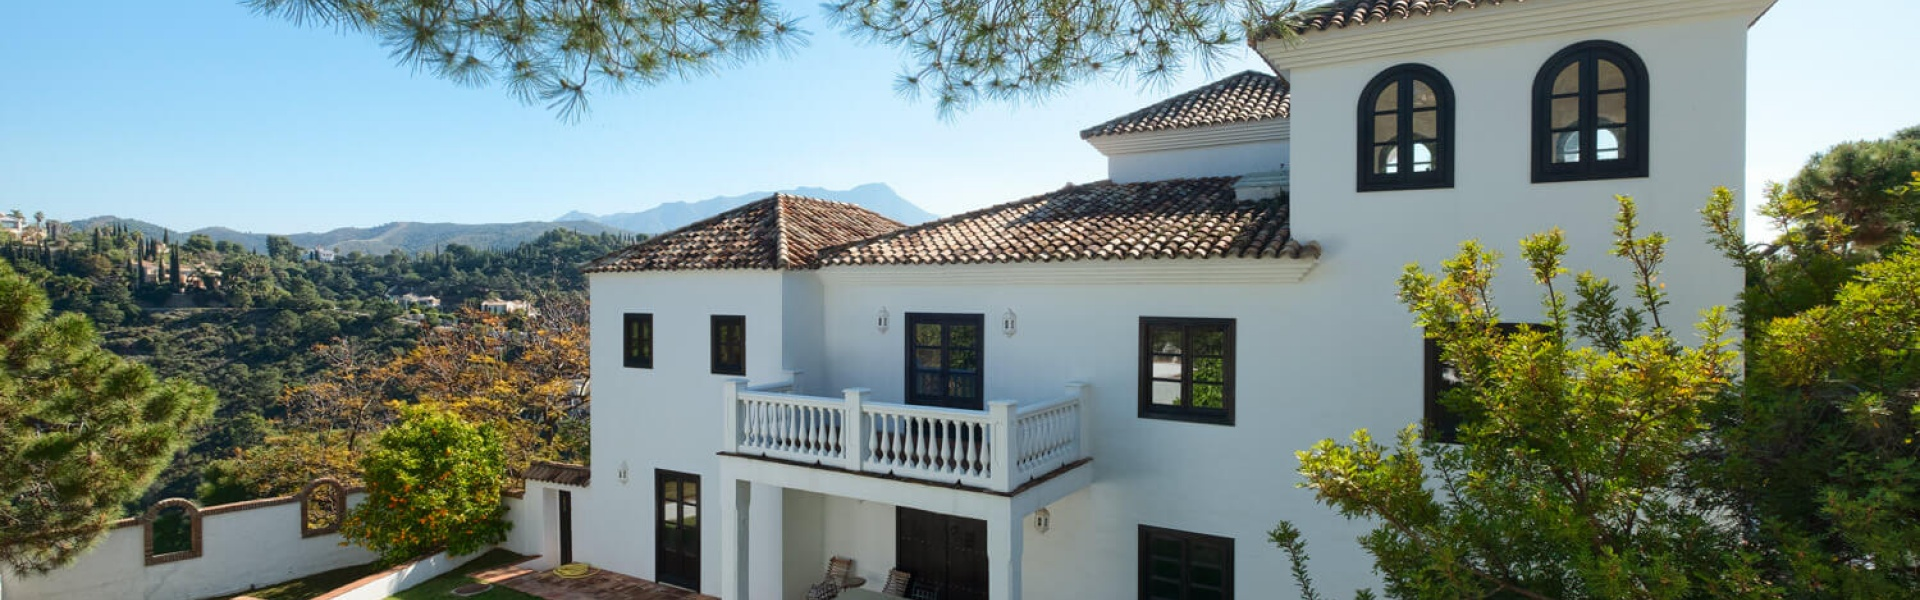 Villa for sale at El Madronal Marbella